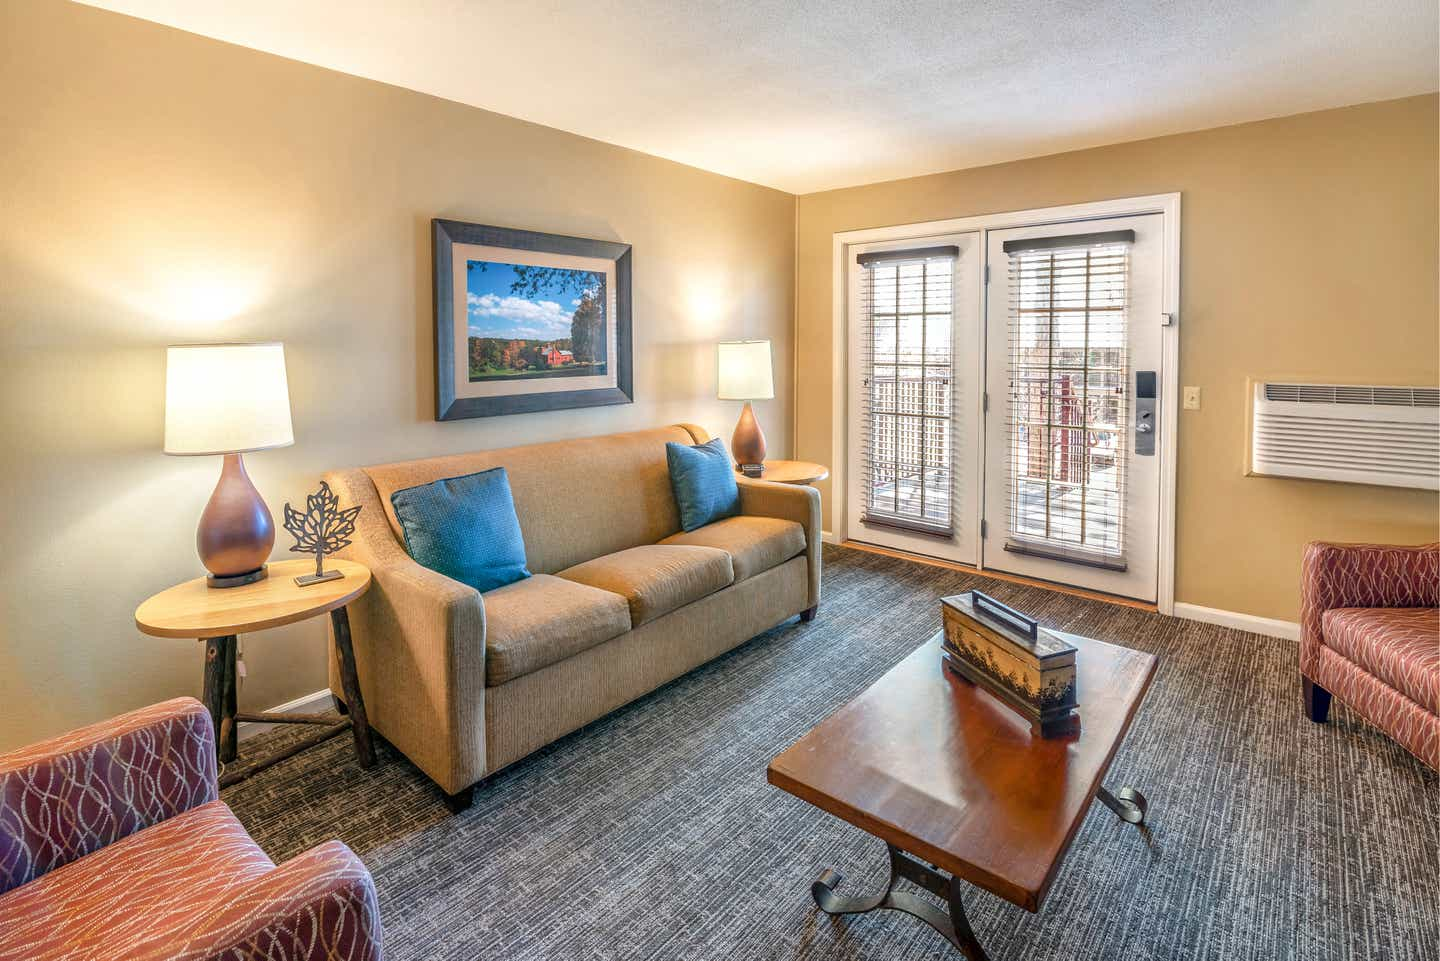 Living room with a sofa, two chairs, and tables in a one bedroom villa at Oak n' Spruce Resort in South Lee, Massachusetts